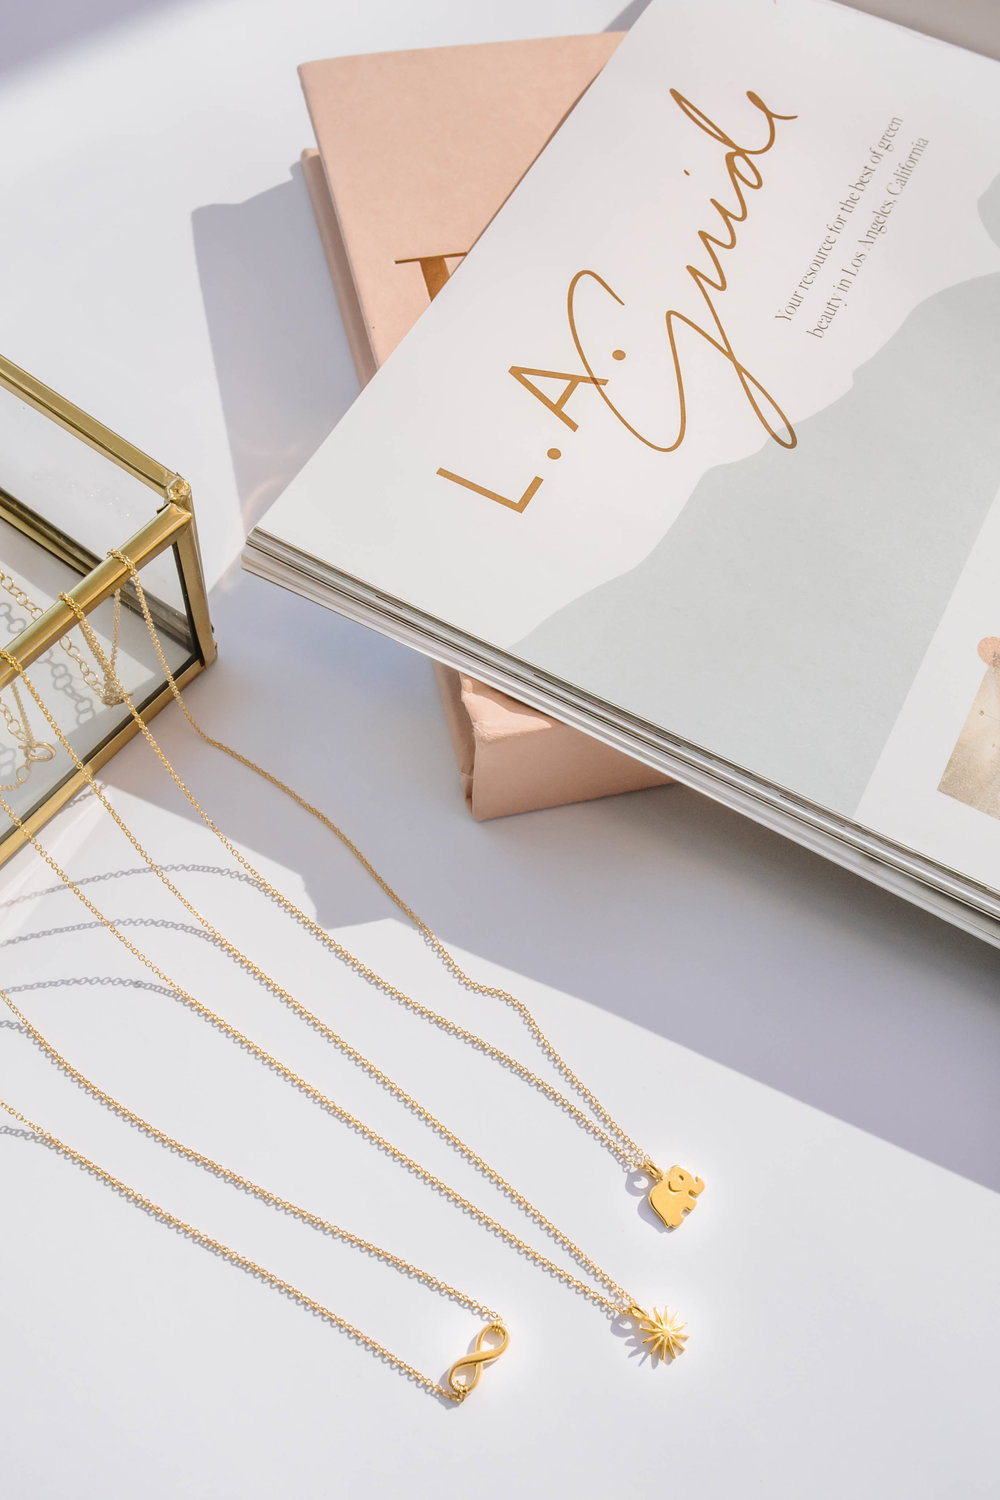 Photography & styling for  @dogearedjewelry